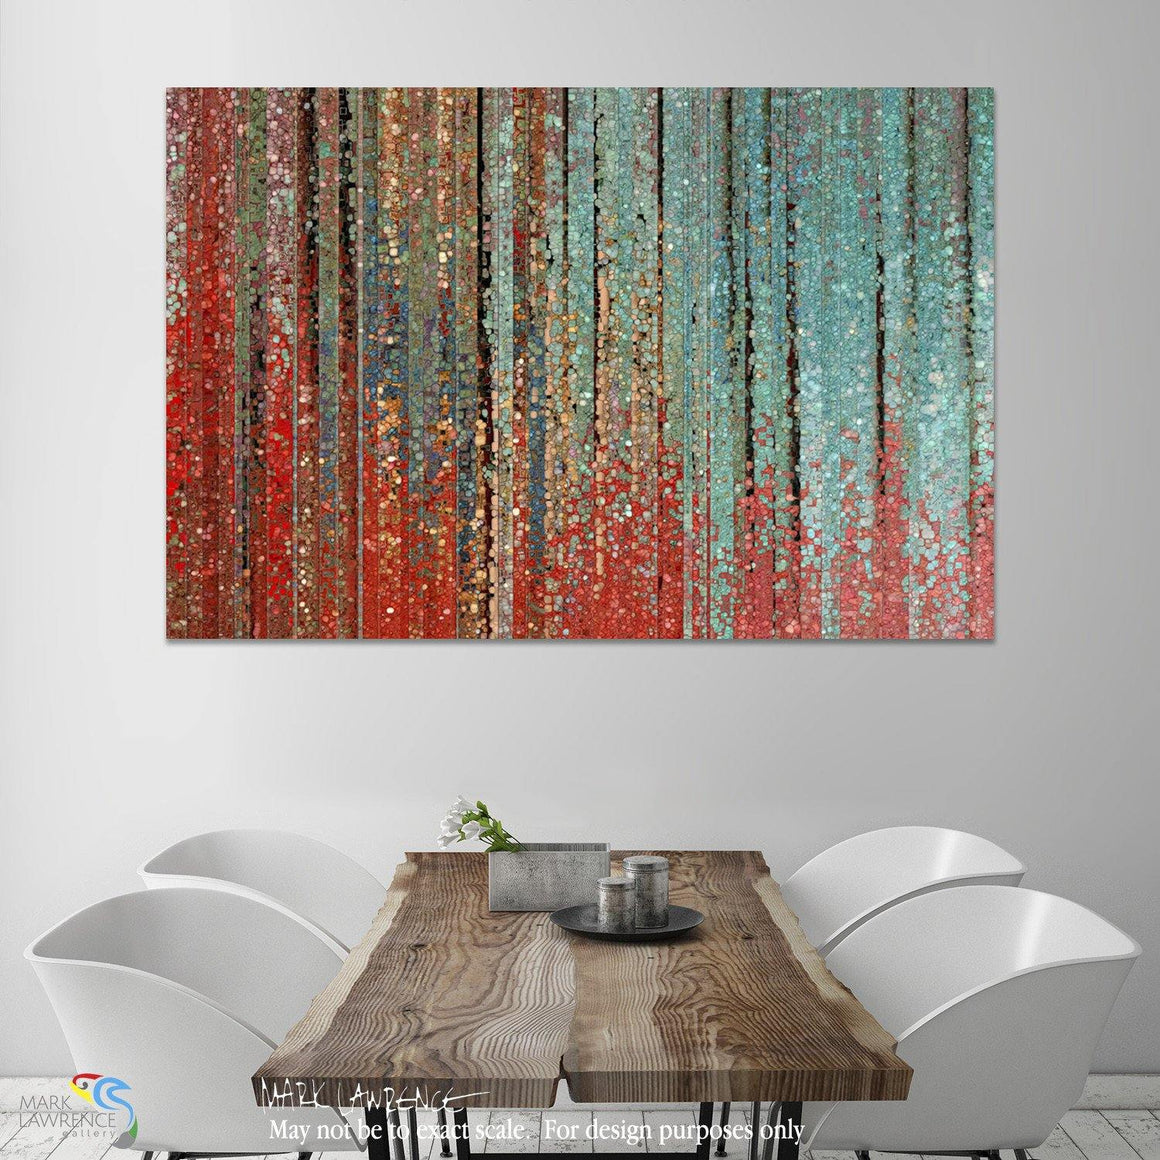 Interior Design Room Inspiration- Philippians 2:3. The Way Up Is Down. Limited Edition Christian themed art. Ultra hand embellished large canvas art with brush strokes. Signed and numbered art.